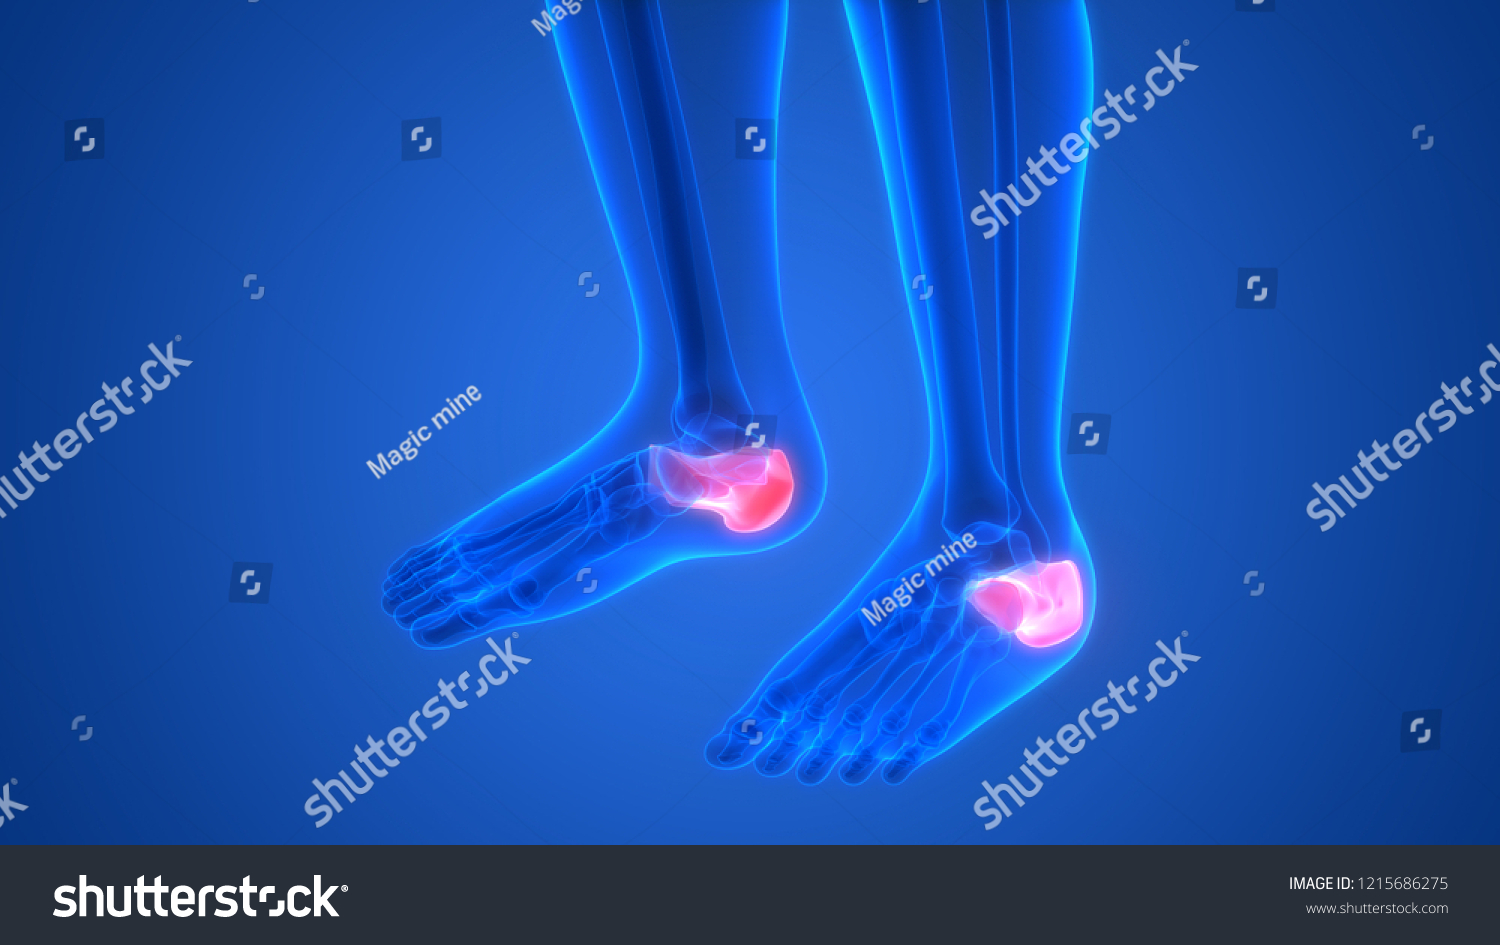 Royalty Free Stock Illustration Of Human Skeleton System Calcaneus